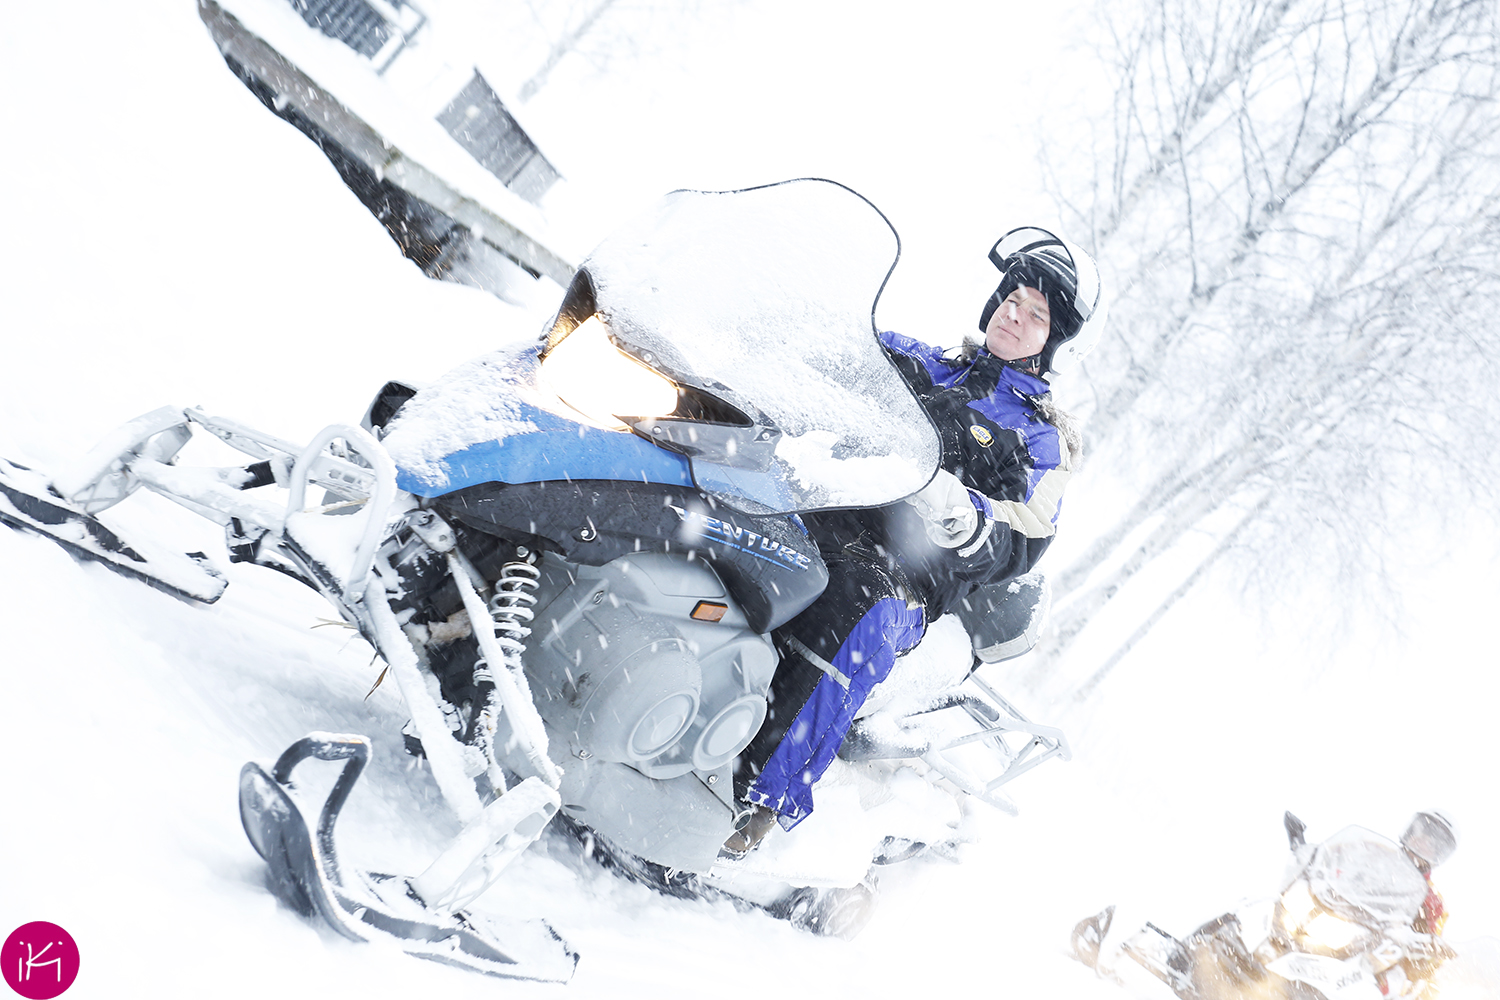 snowscooters